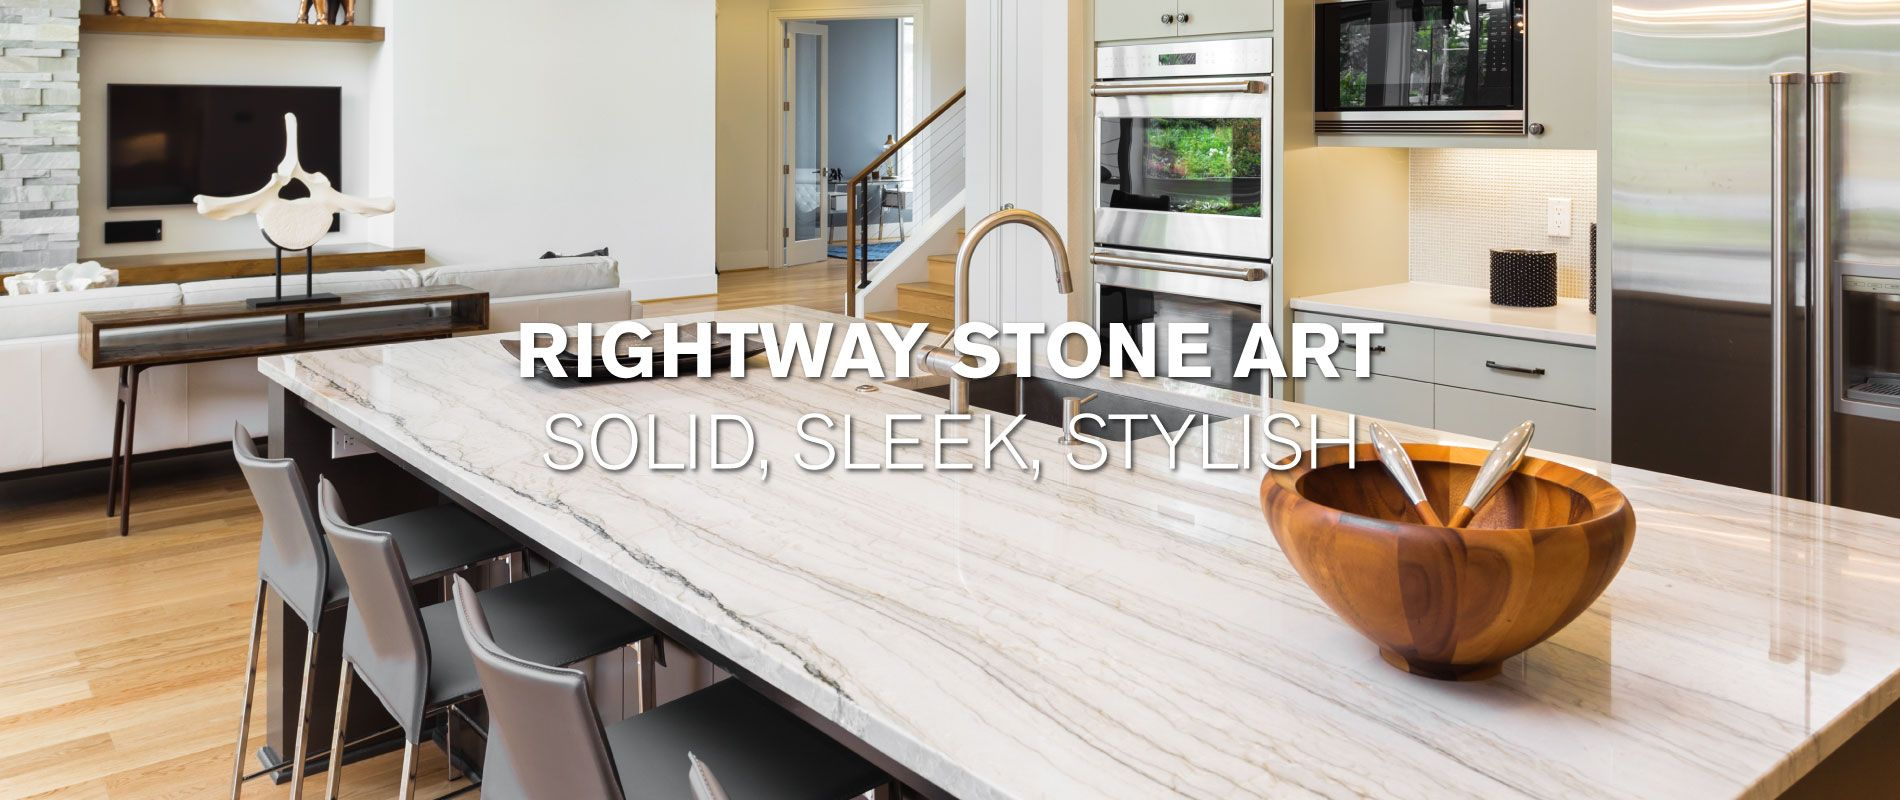 Rightway Stone Art | Solid, Sleek, Stylish | Modern Kitchen with stone island